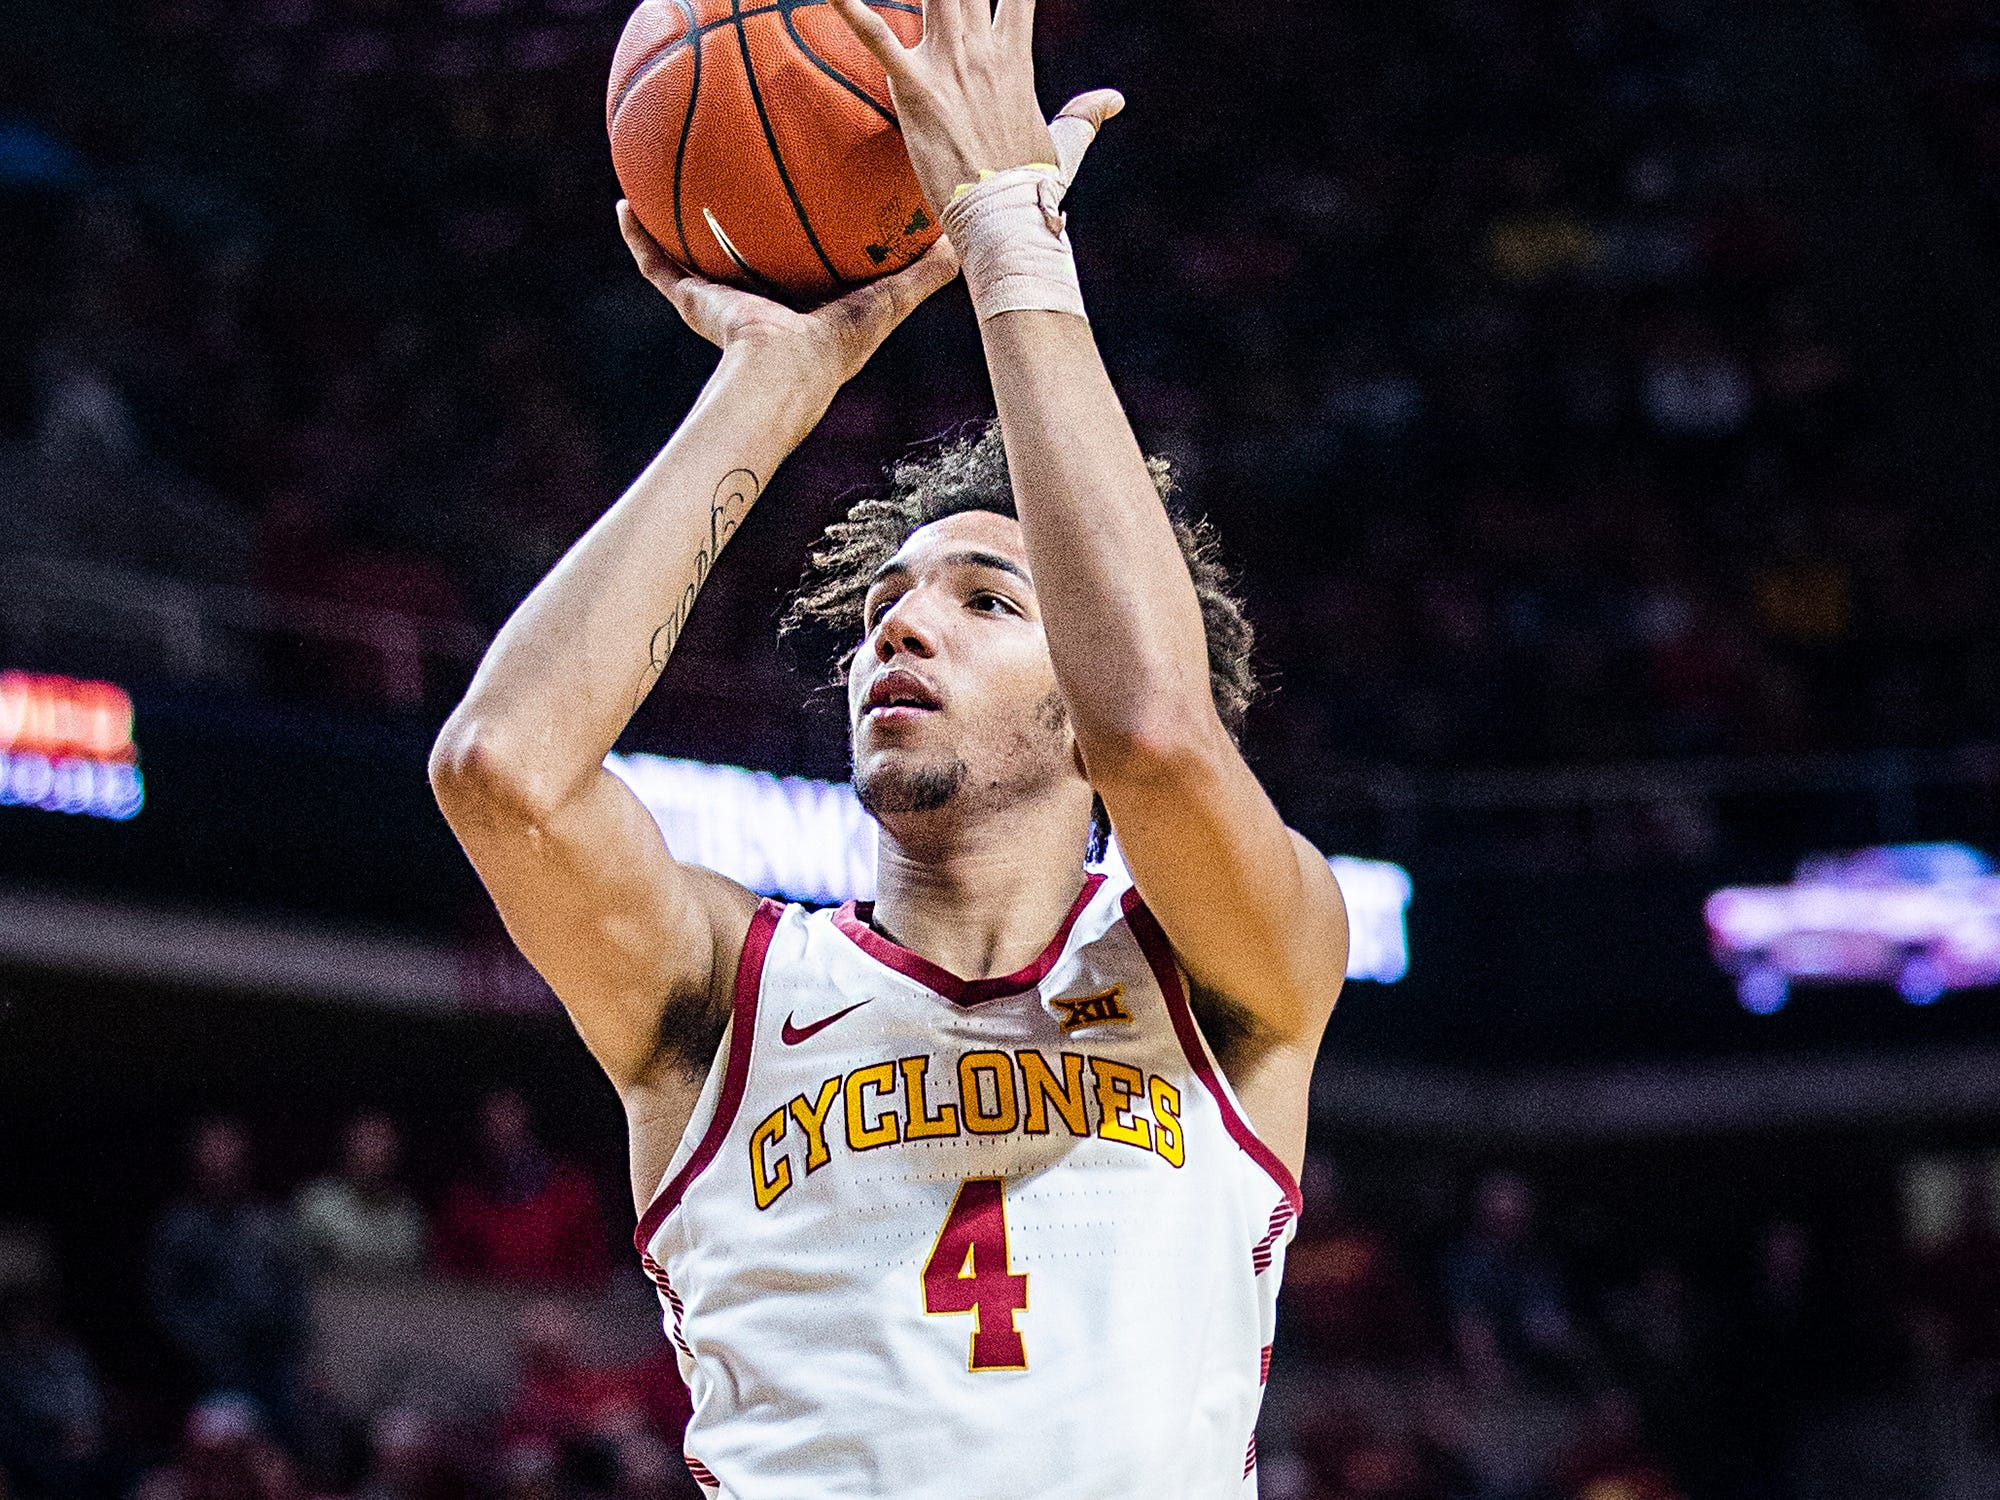 Iowa State's George Conditt shoots the ball during the Iowa State men's basketball game against Omaha on Monday, Nov. 26, 2018, at Hilton Coliseum, in Ames.